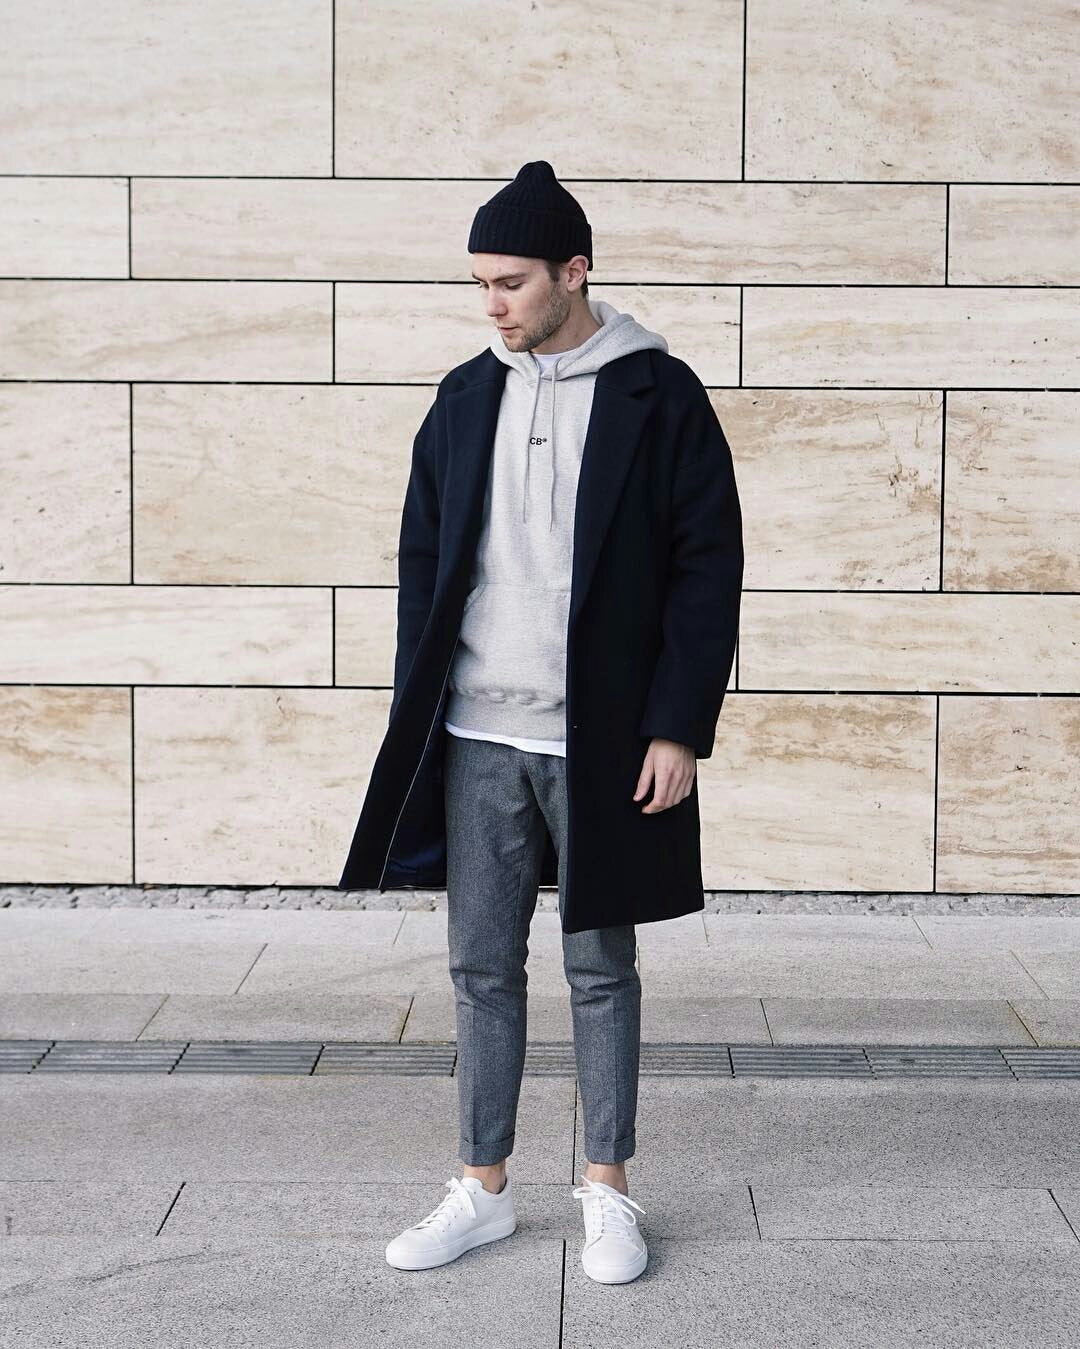 6 Simple Street Style Looks For Winter – LIFESTYLE BY PS